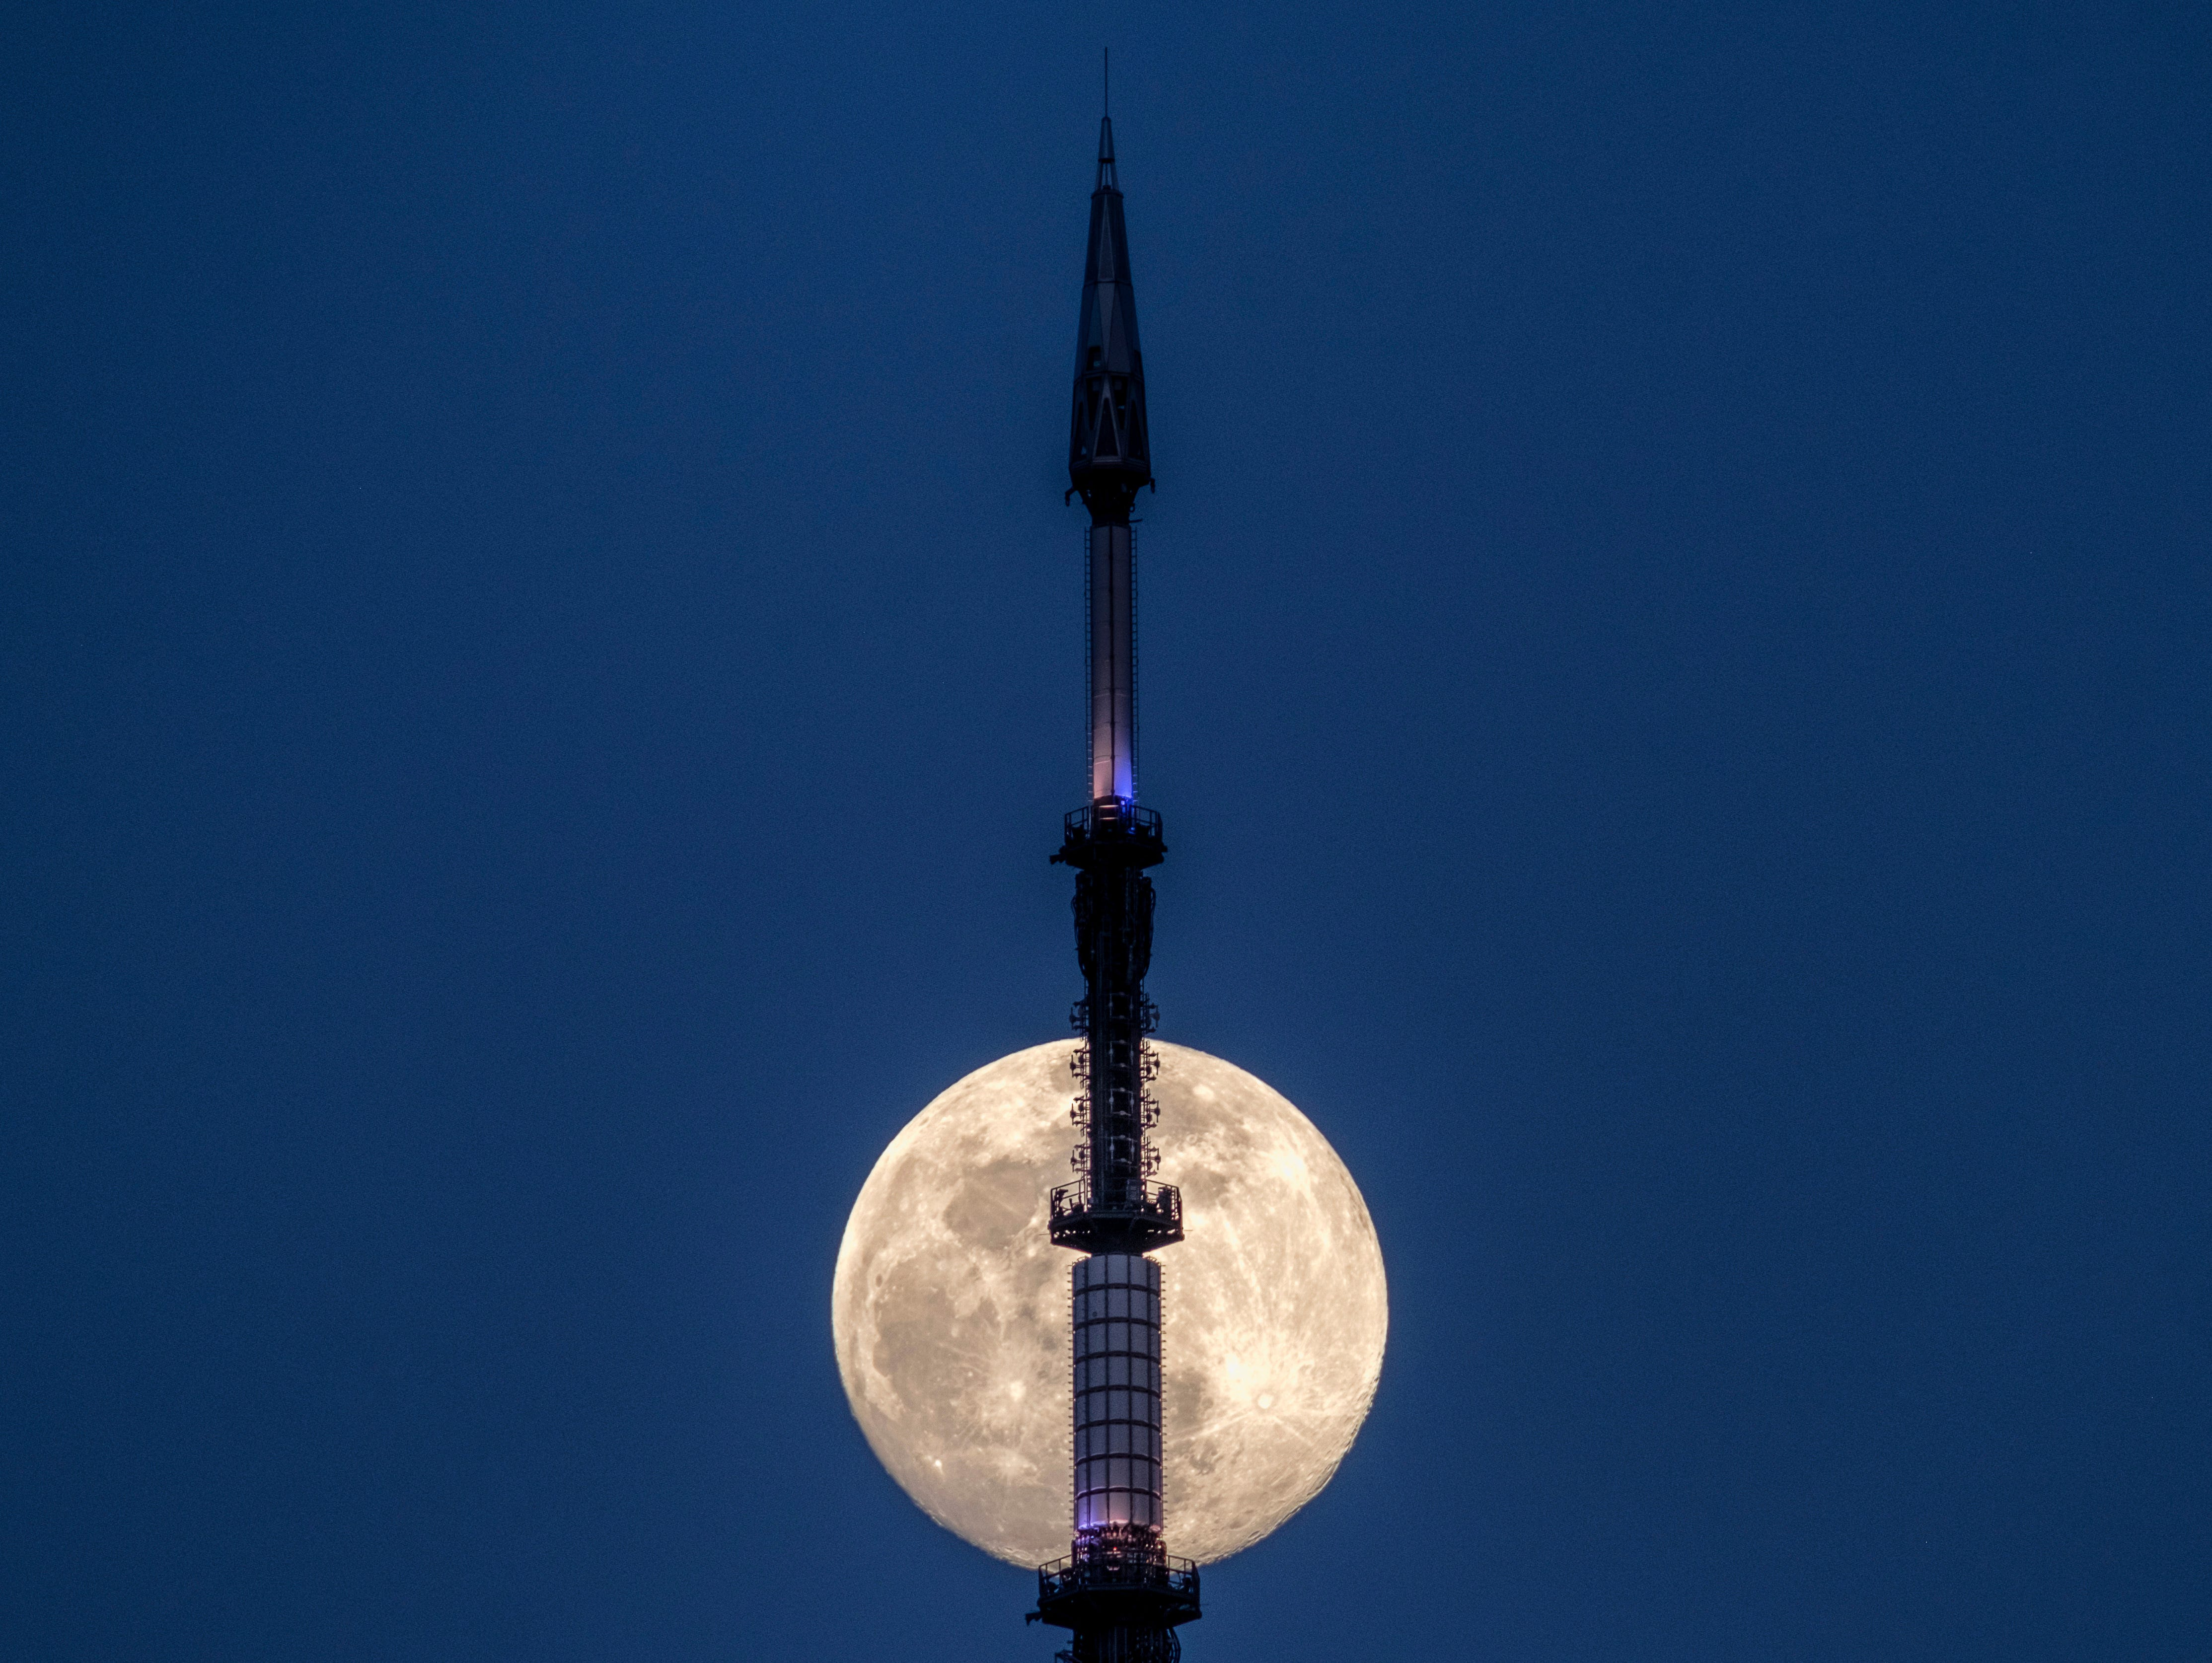 The rising moon passes behind the broadcast antenna on top of One World Trade Center Tuesday evening, March 19, 2019 in New York City.